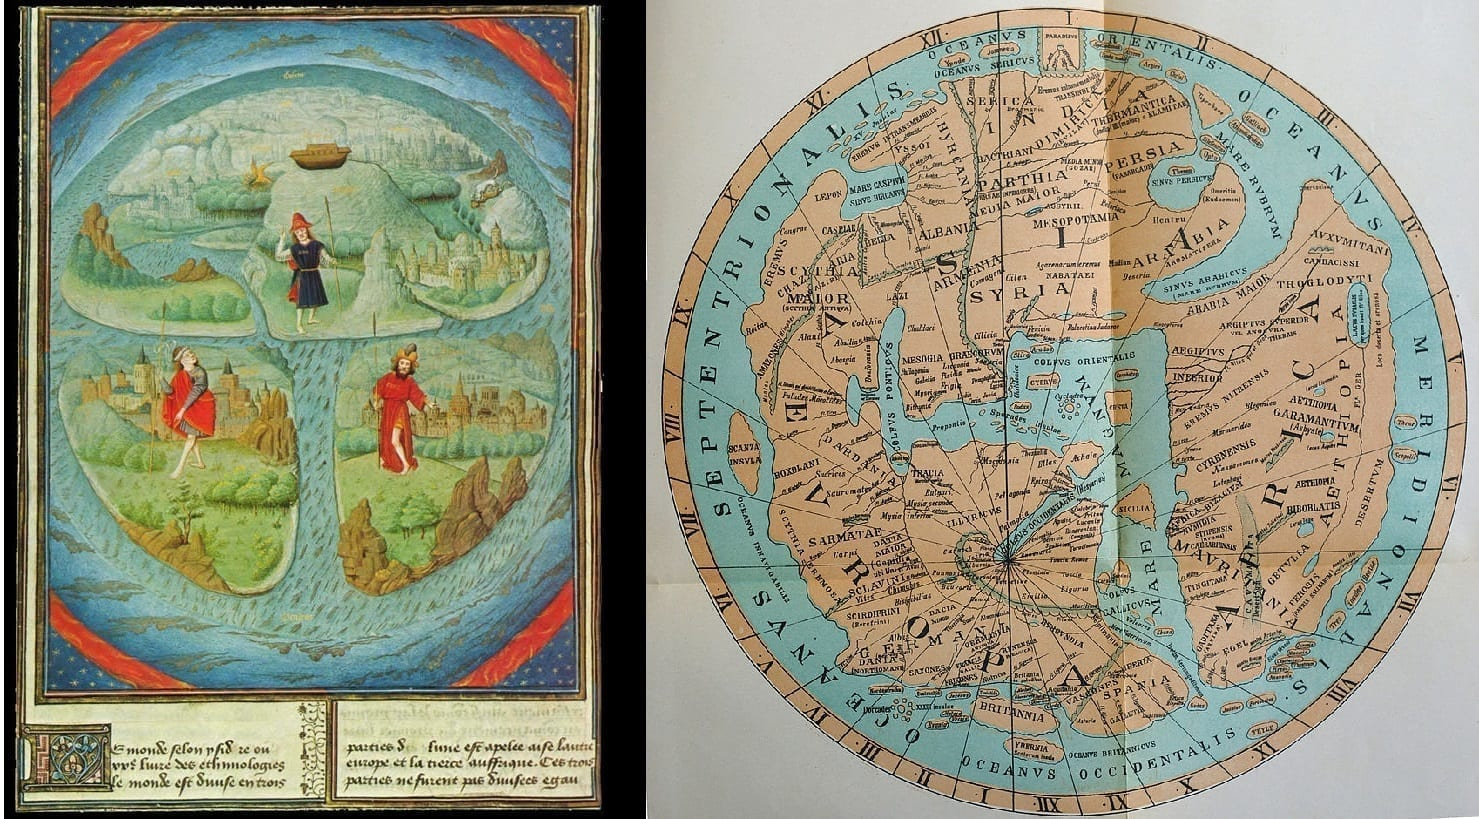 Two medieval Mappa Mundi depictions